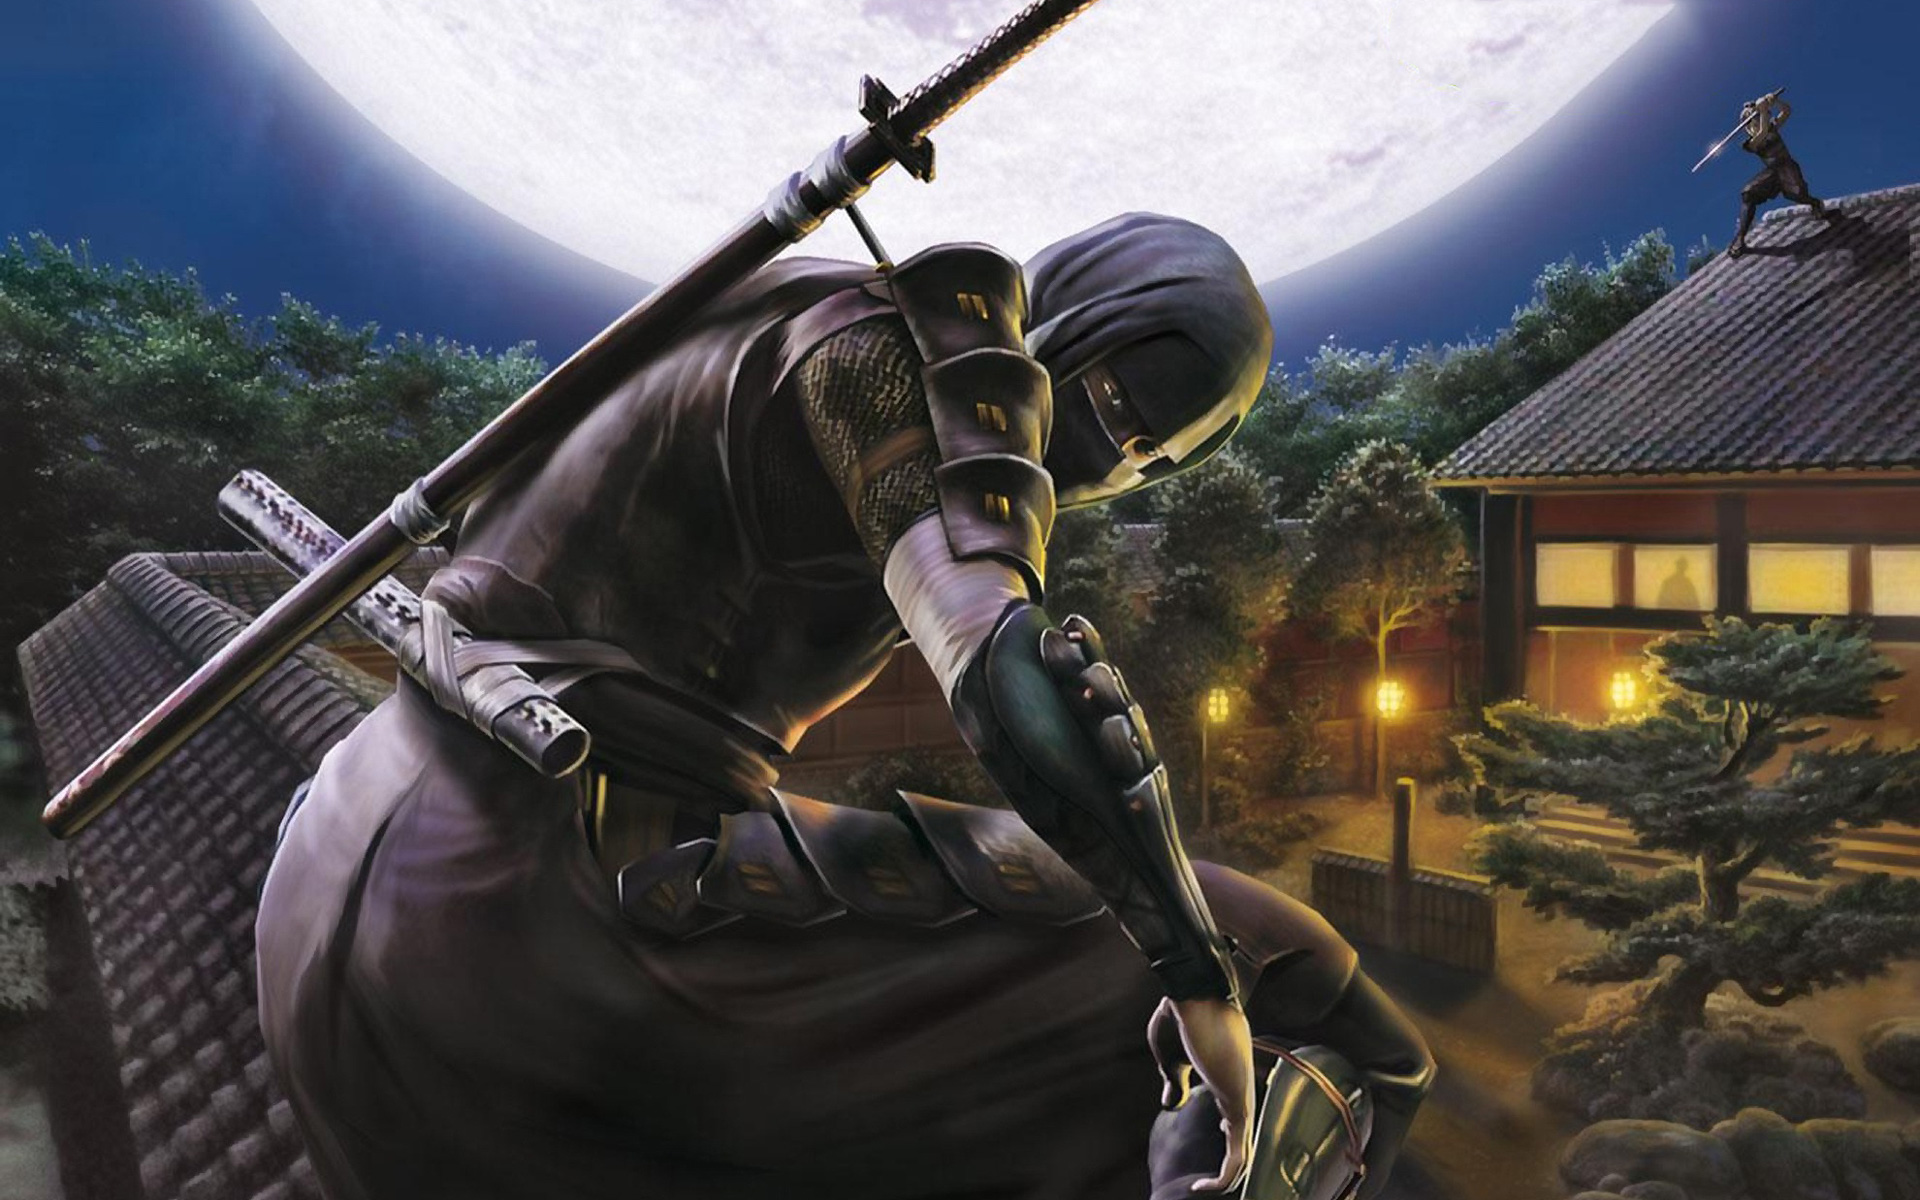 Tenchu Z Wallpaper in 1920x1200